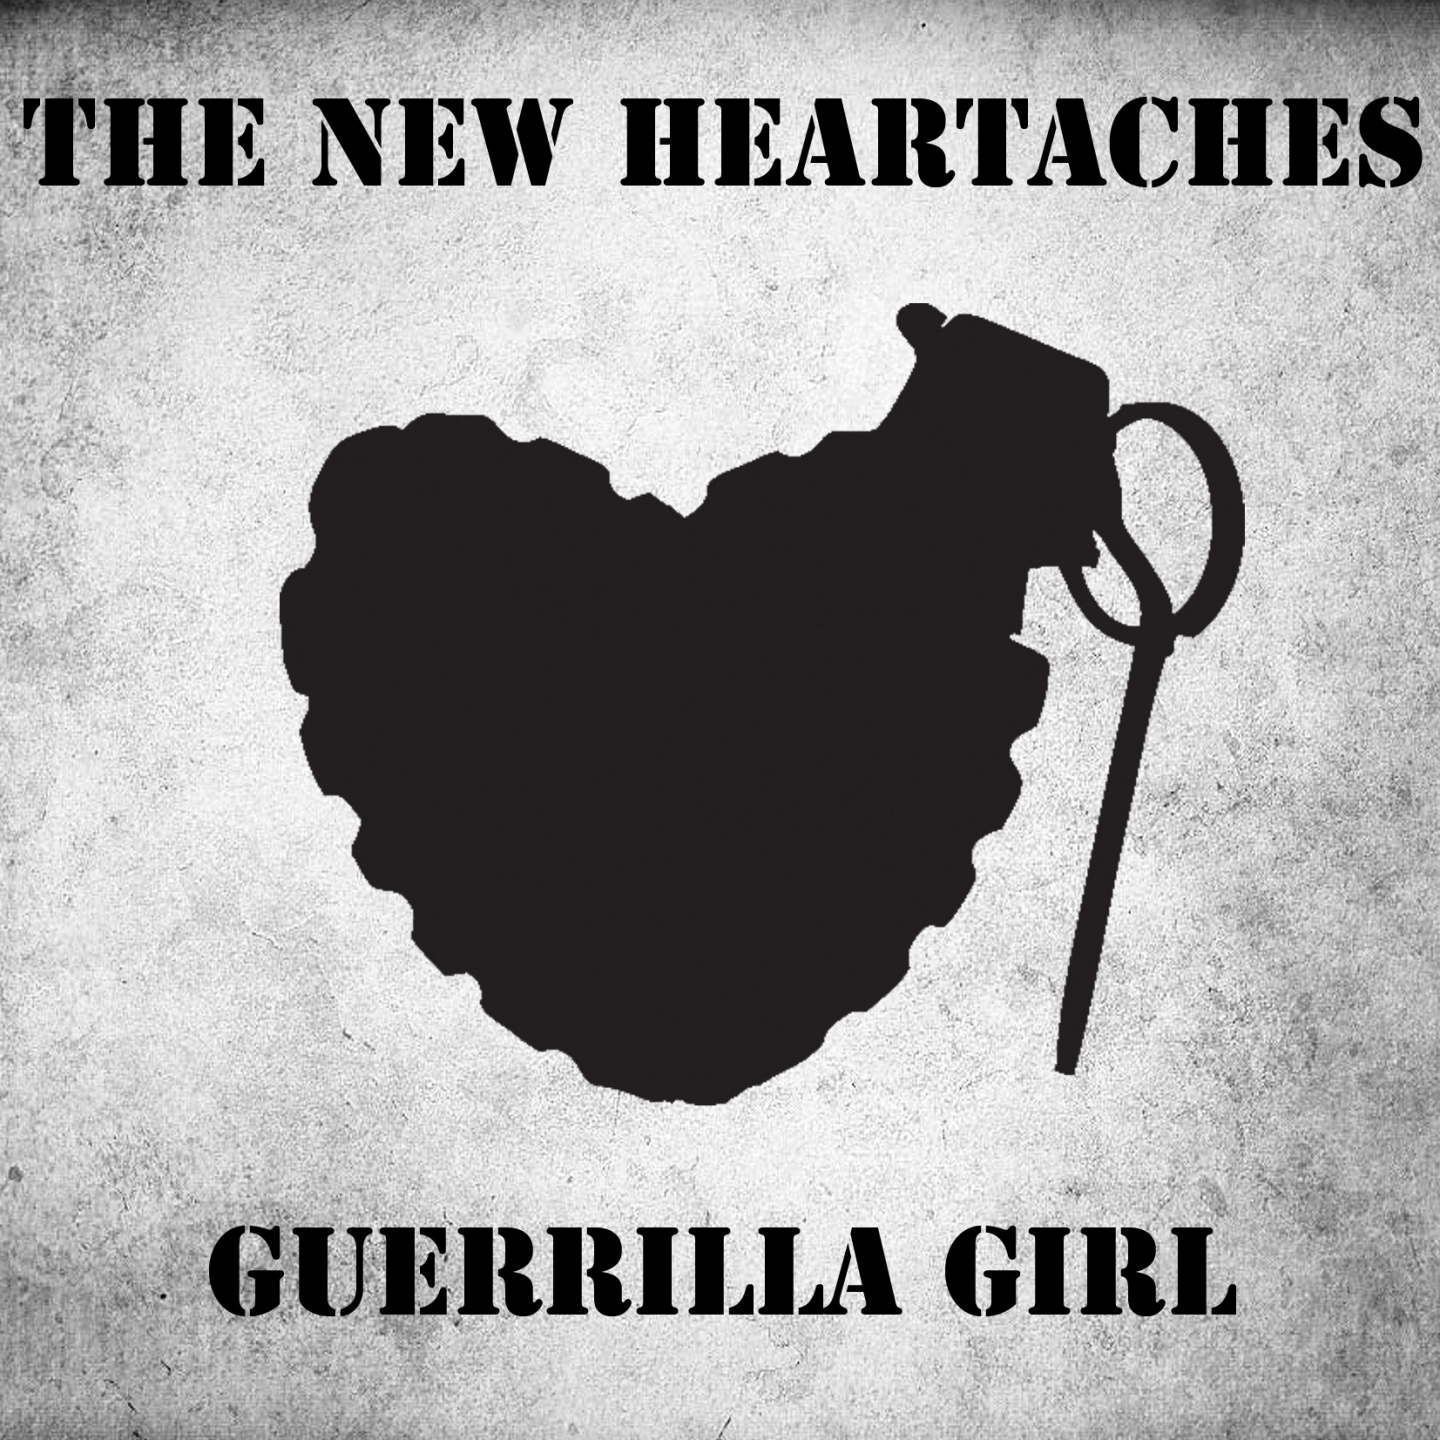 The New Heartaches – 'Guerrilla Girl' (Single)